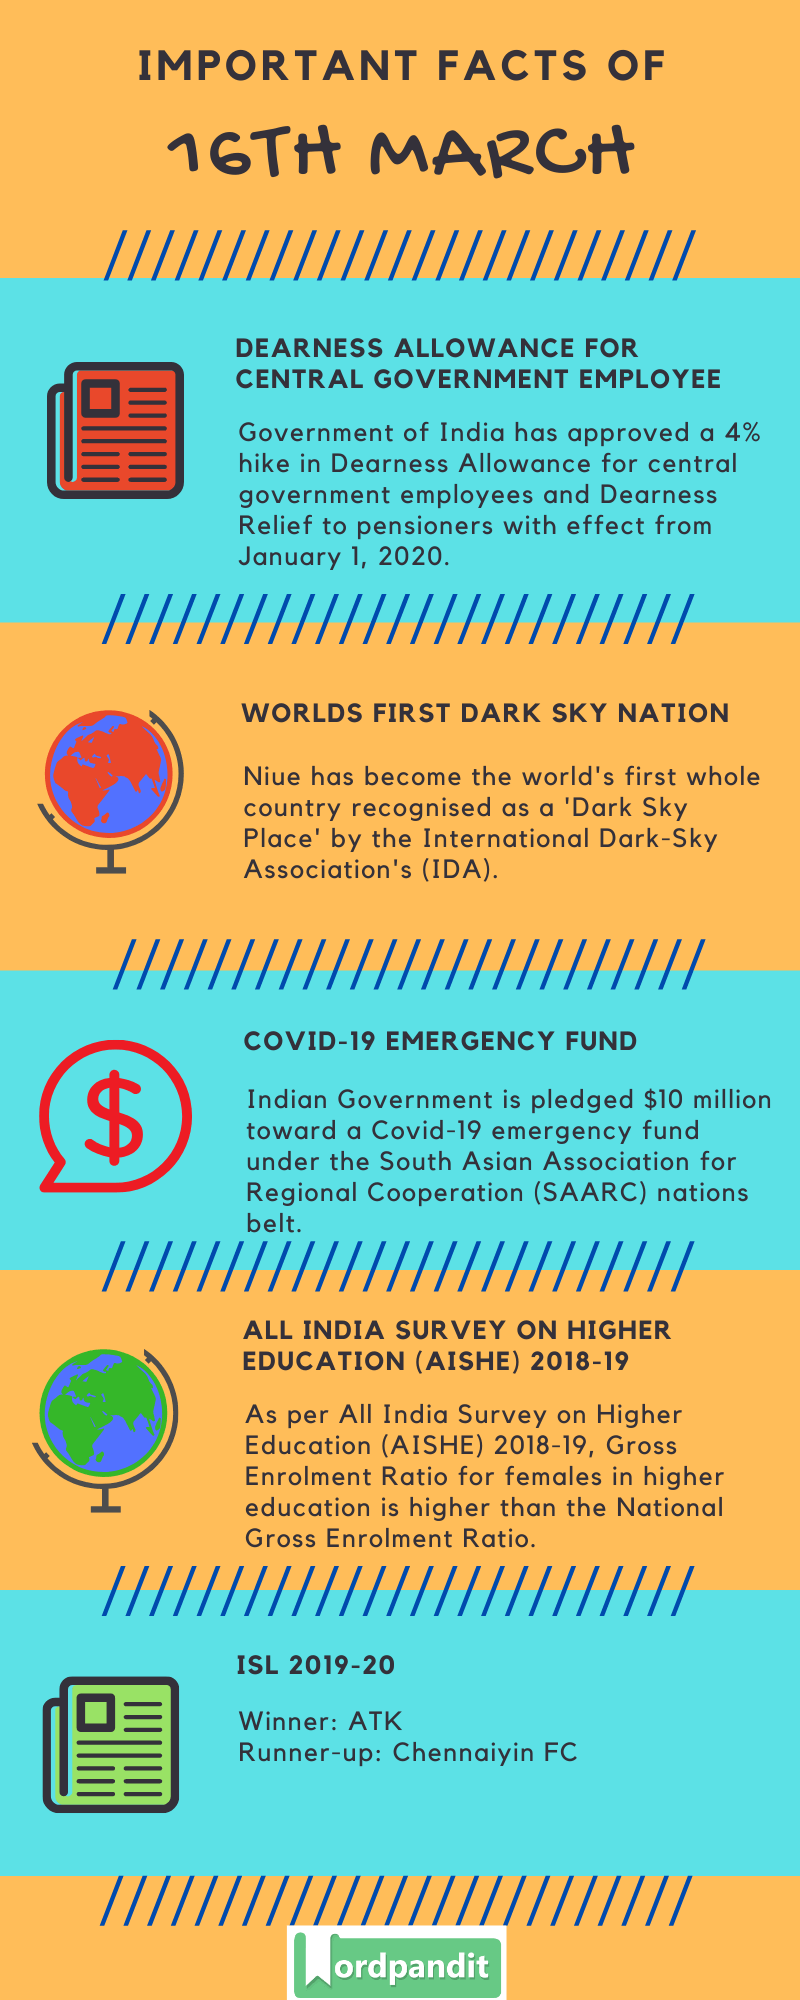 Daily Current Affairs 16 March 2020 Current Affairs Quiz 16 March 2020 Current Affairs Infographic